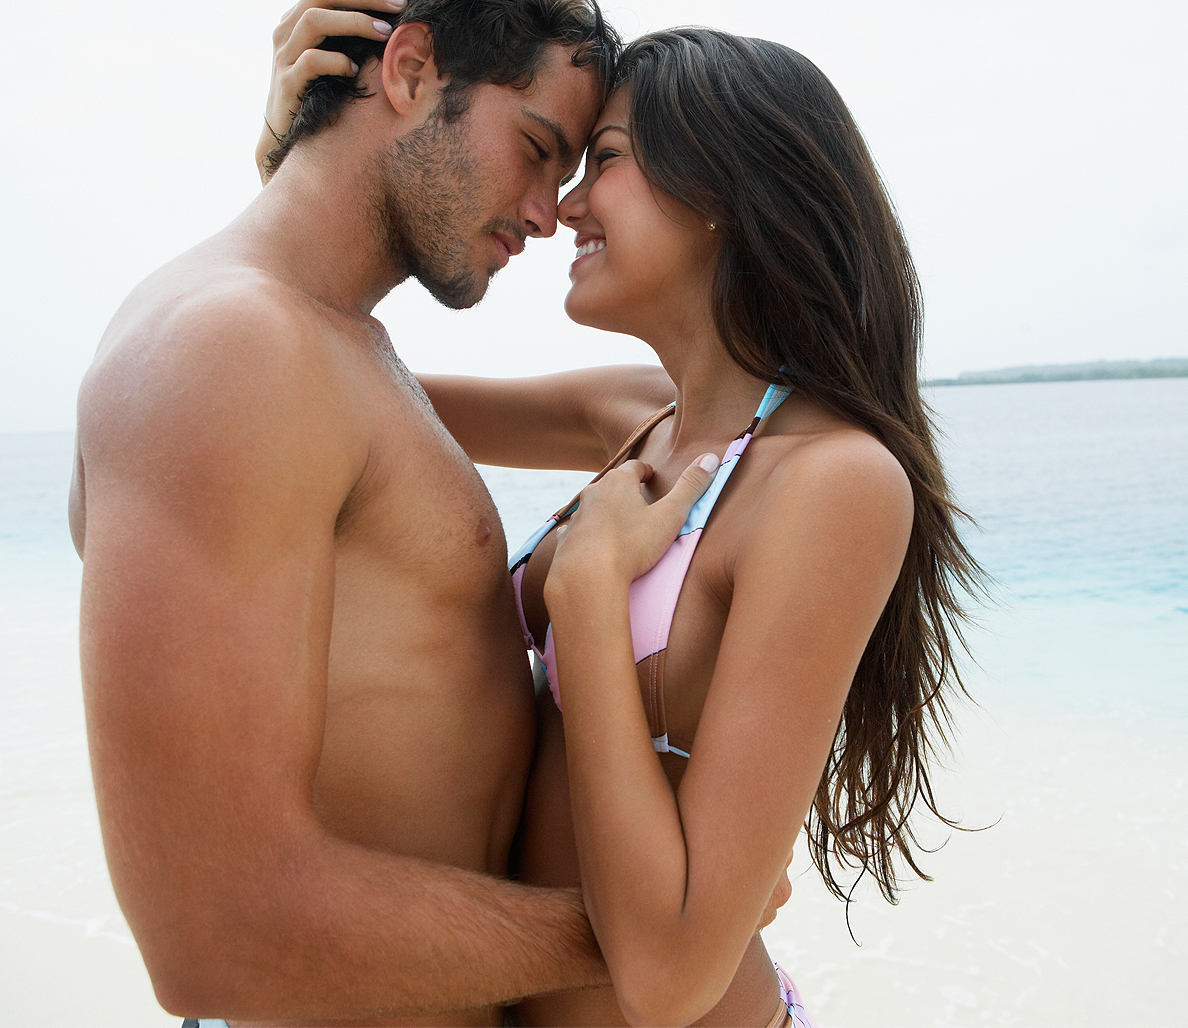 Beach couples nude sex free